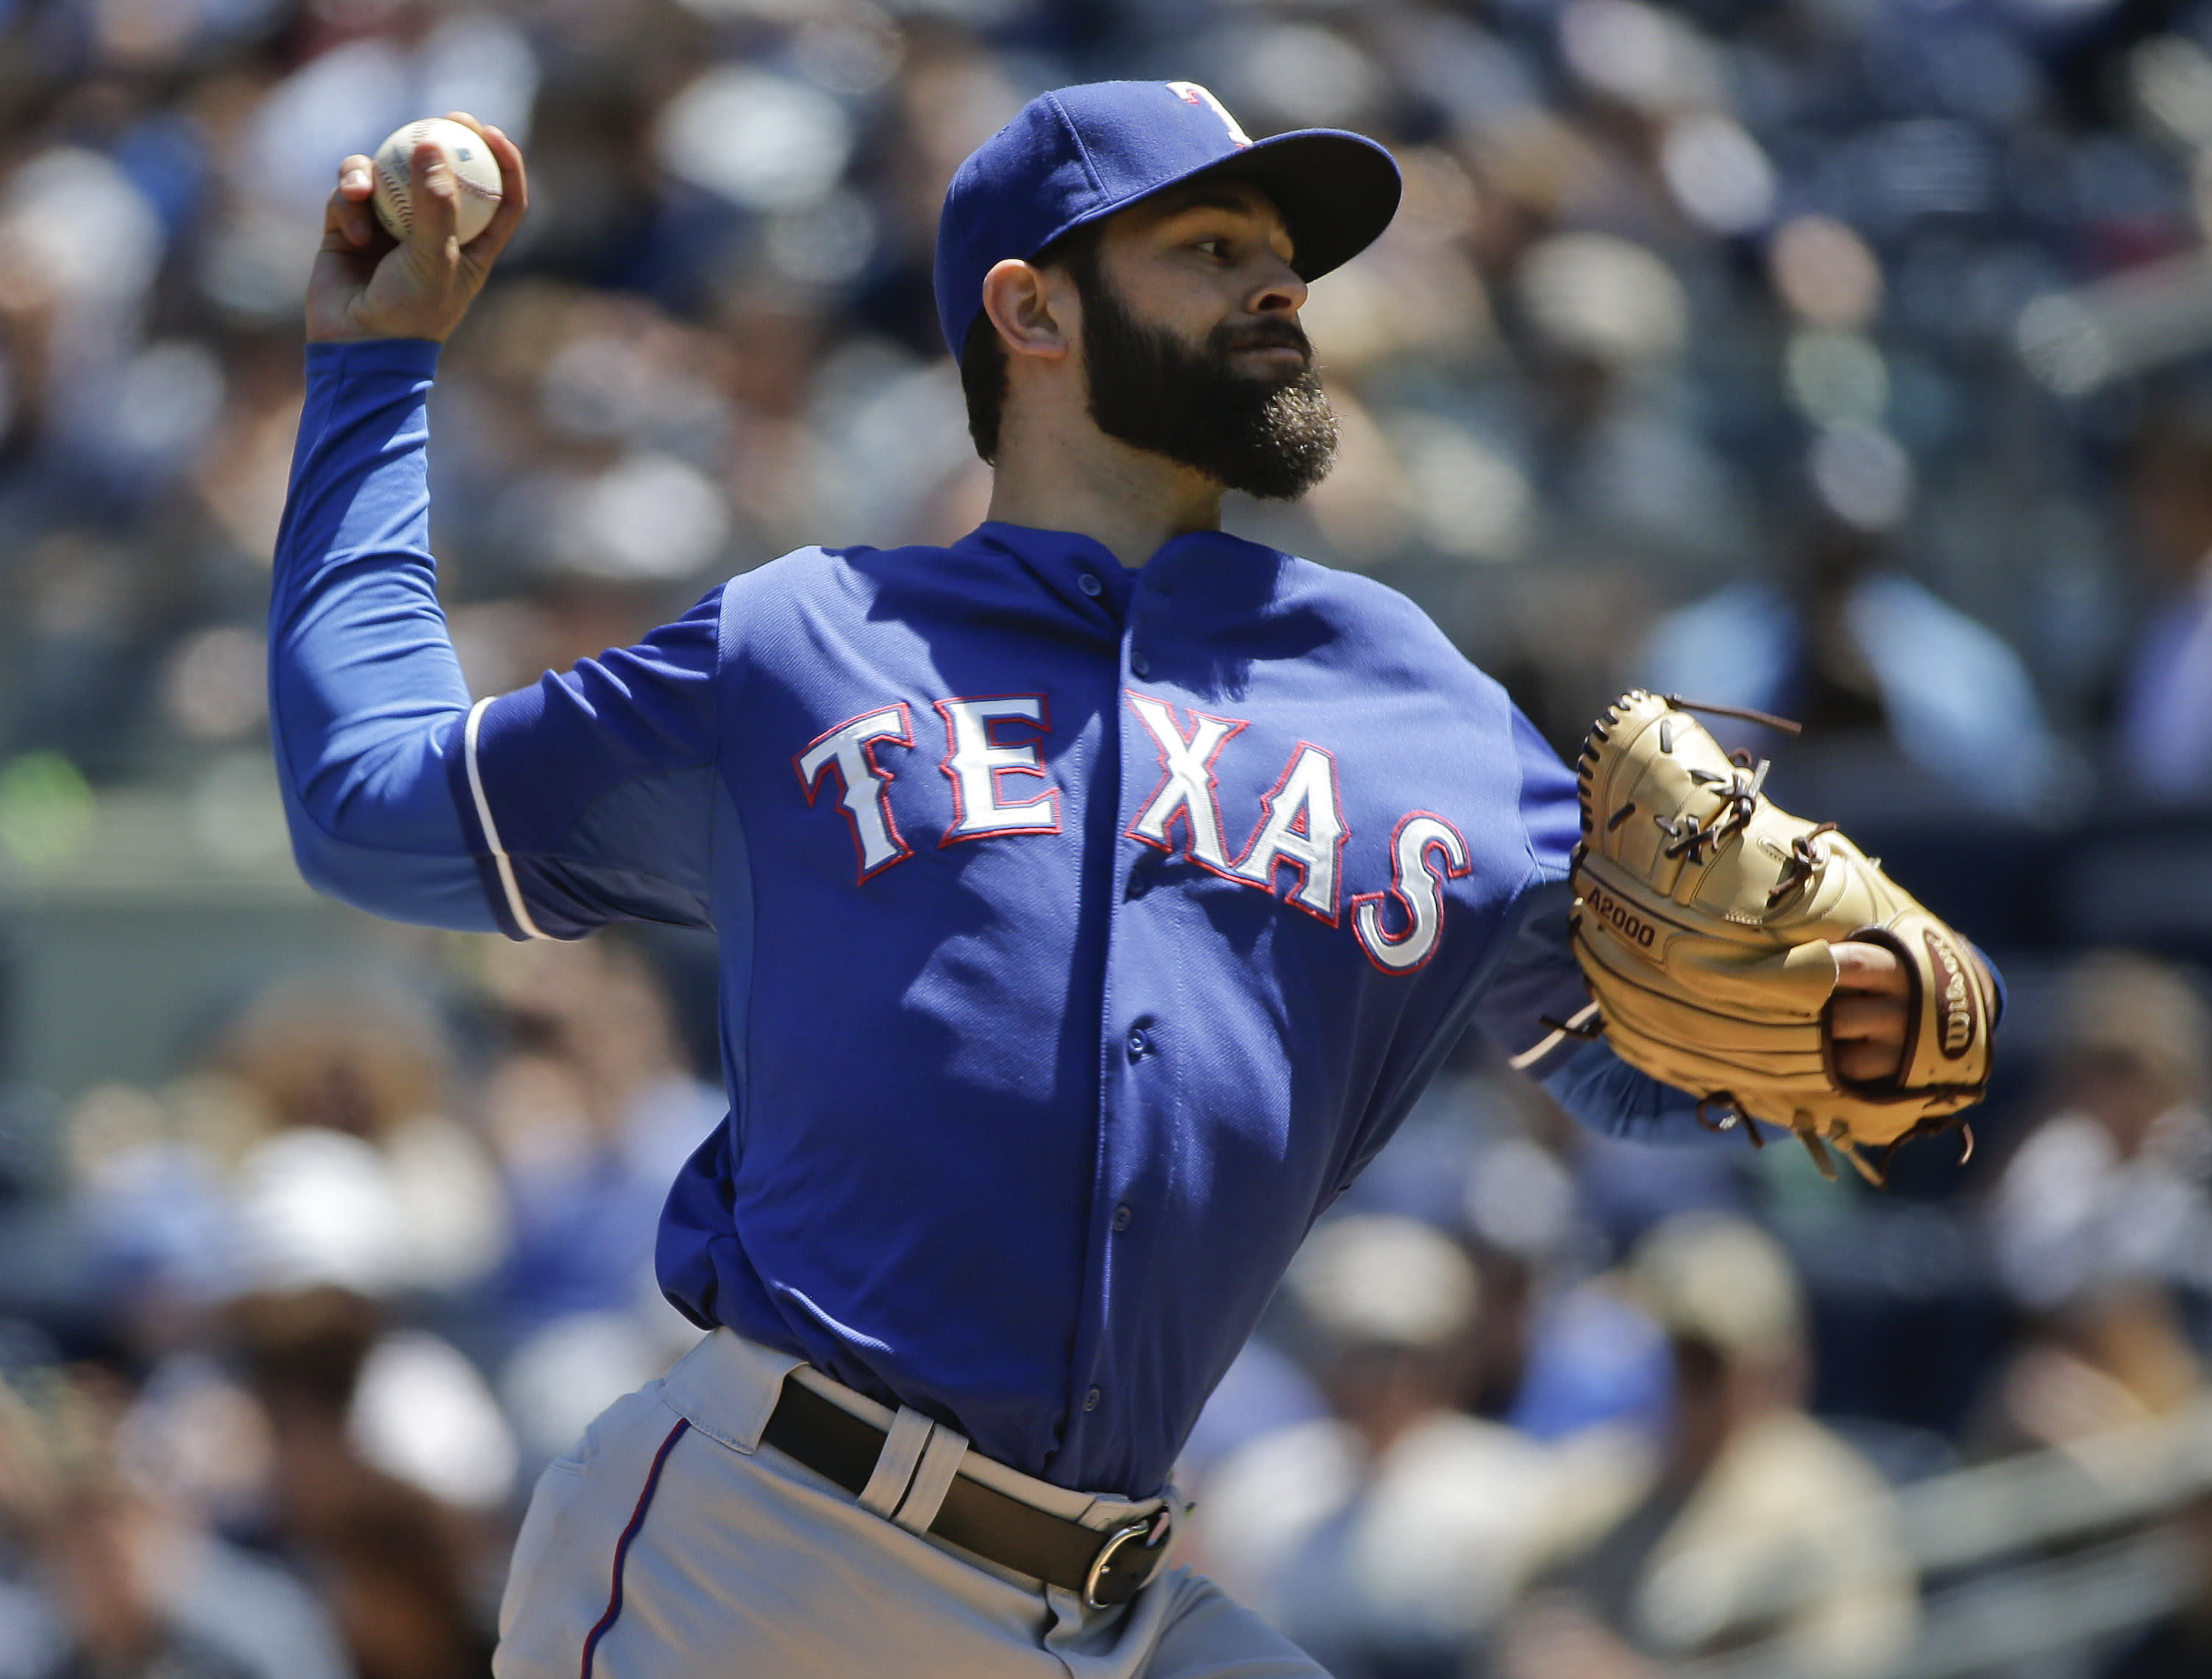 Bronx bleachers to mound: Martinez leads Rangers to 15-4 win